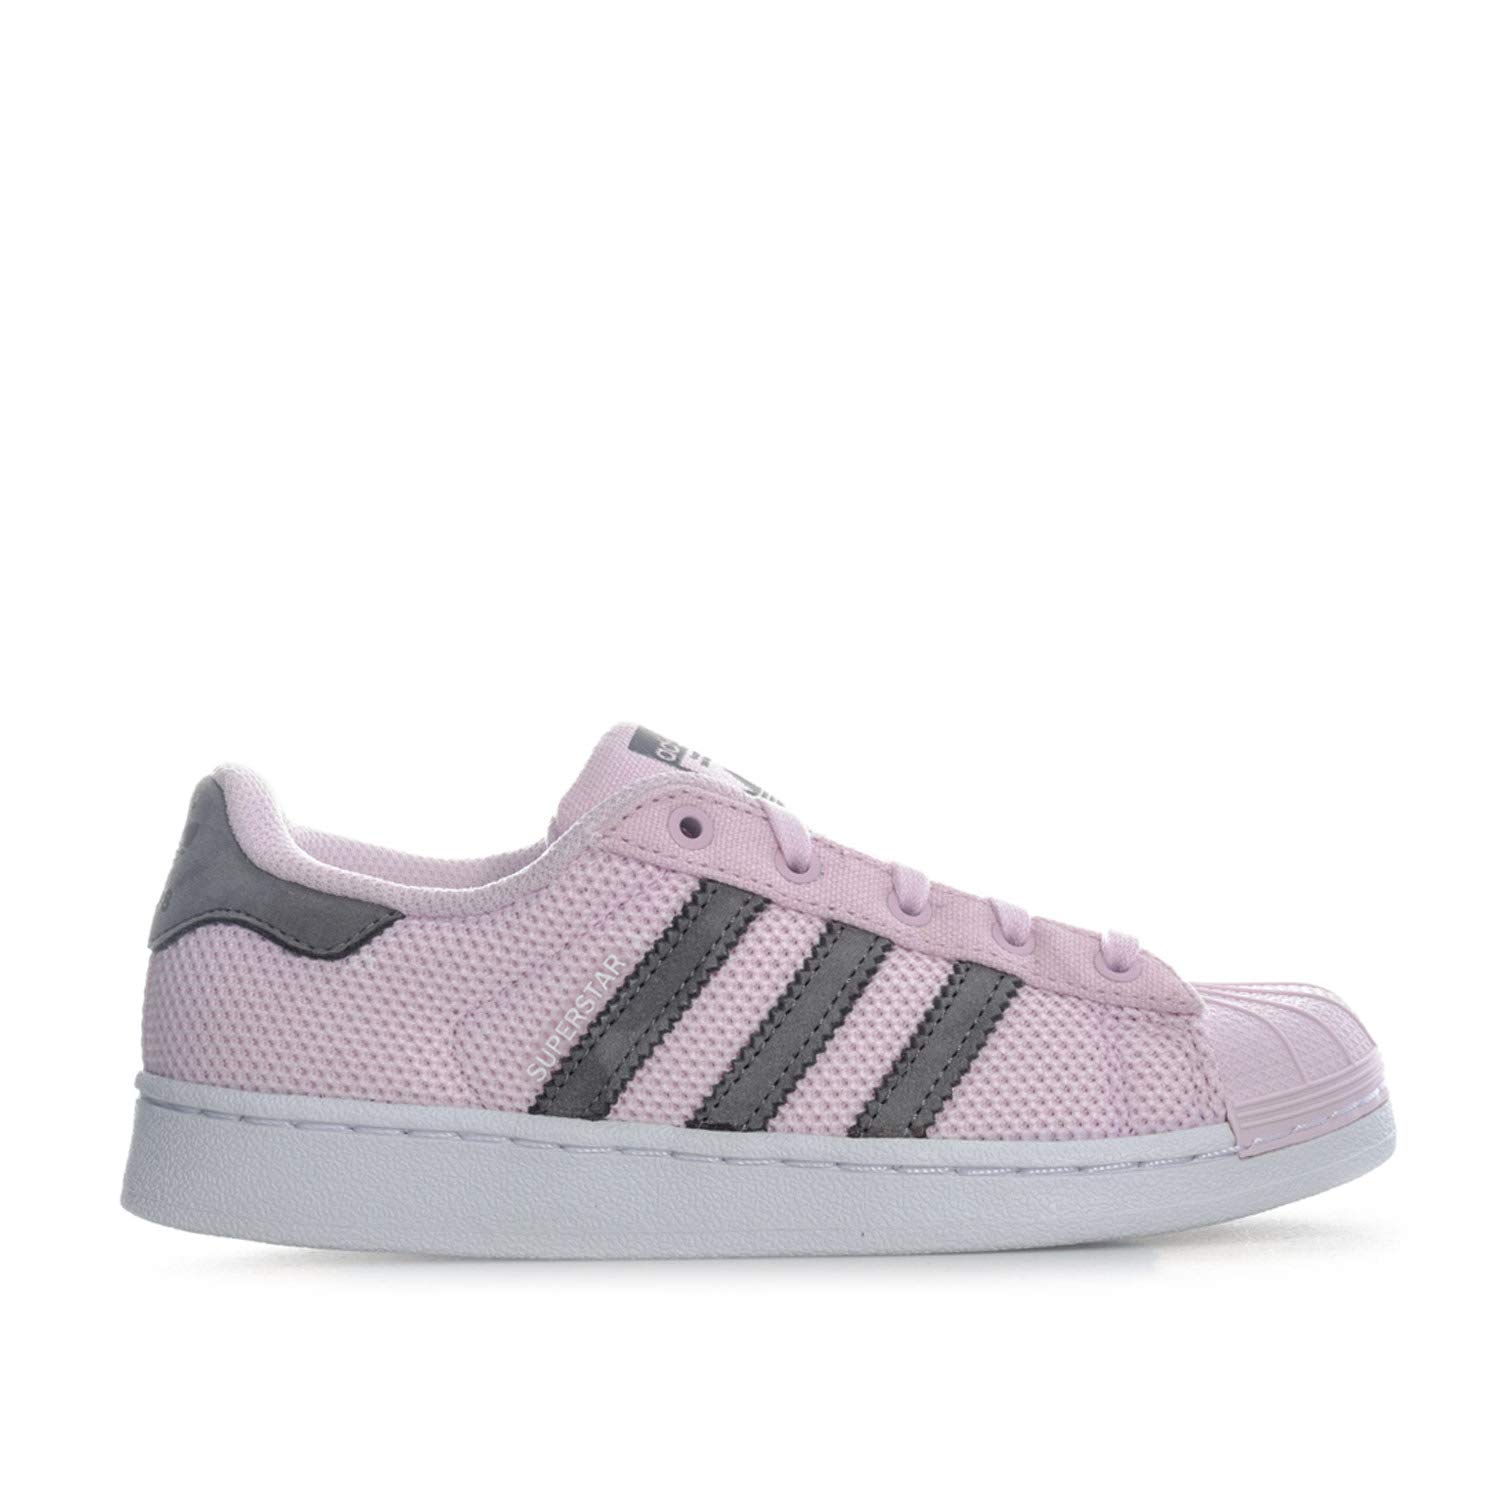 new concept 91765 9f0de Amazon.com | adidas Originals Girl's Superstar Trainers 10.5 ...